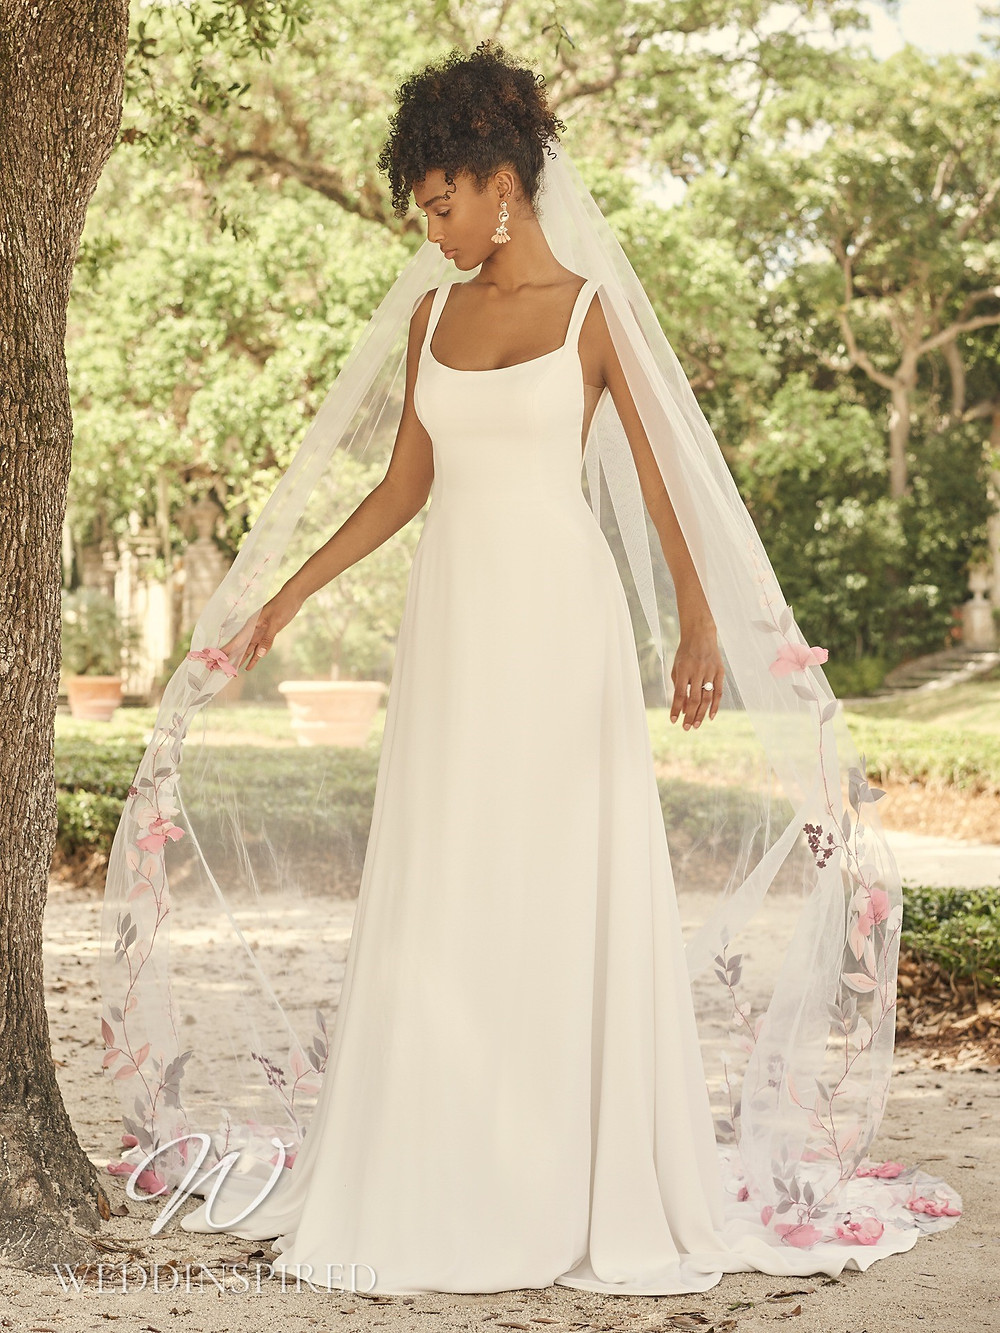 A Maggie Sottero 2021 simple satin A-line wedding dress